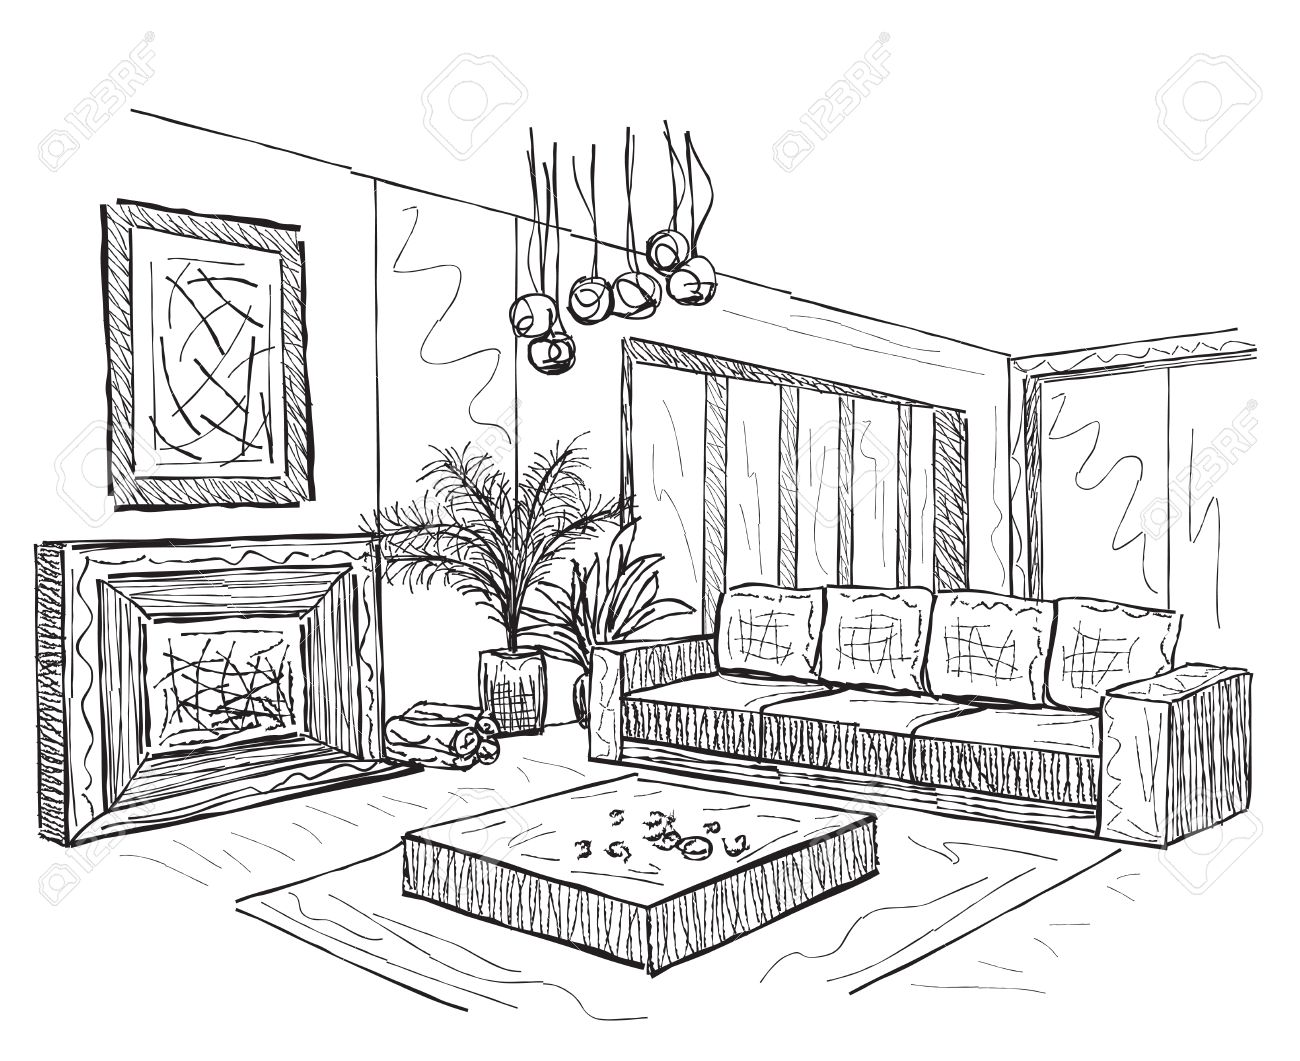 Room Interior Sketch Hand Drawn Furniture In Living Room Royalty Free Cliparts Vectors And Stock Illustration Image 49238402